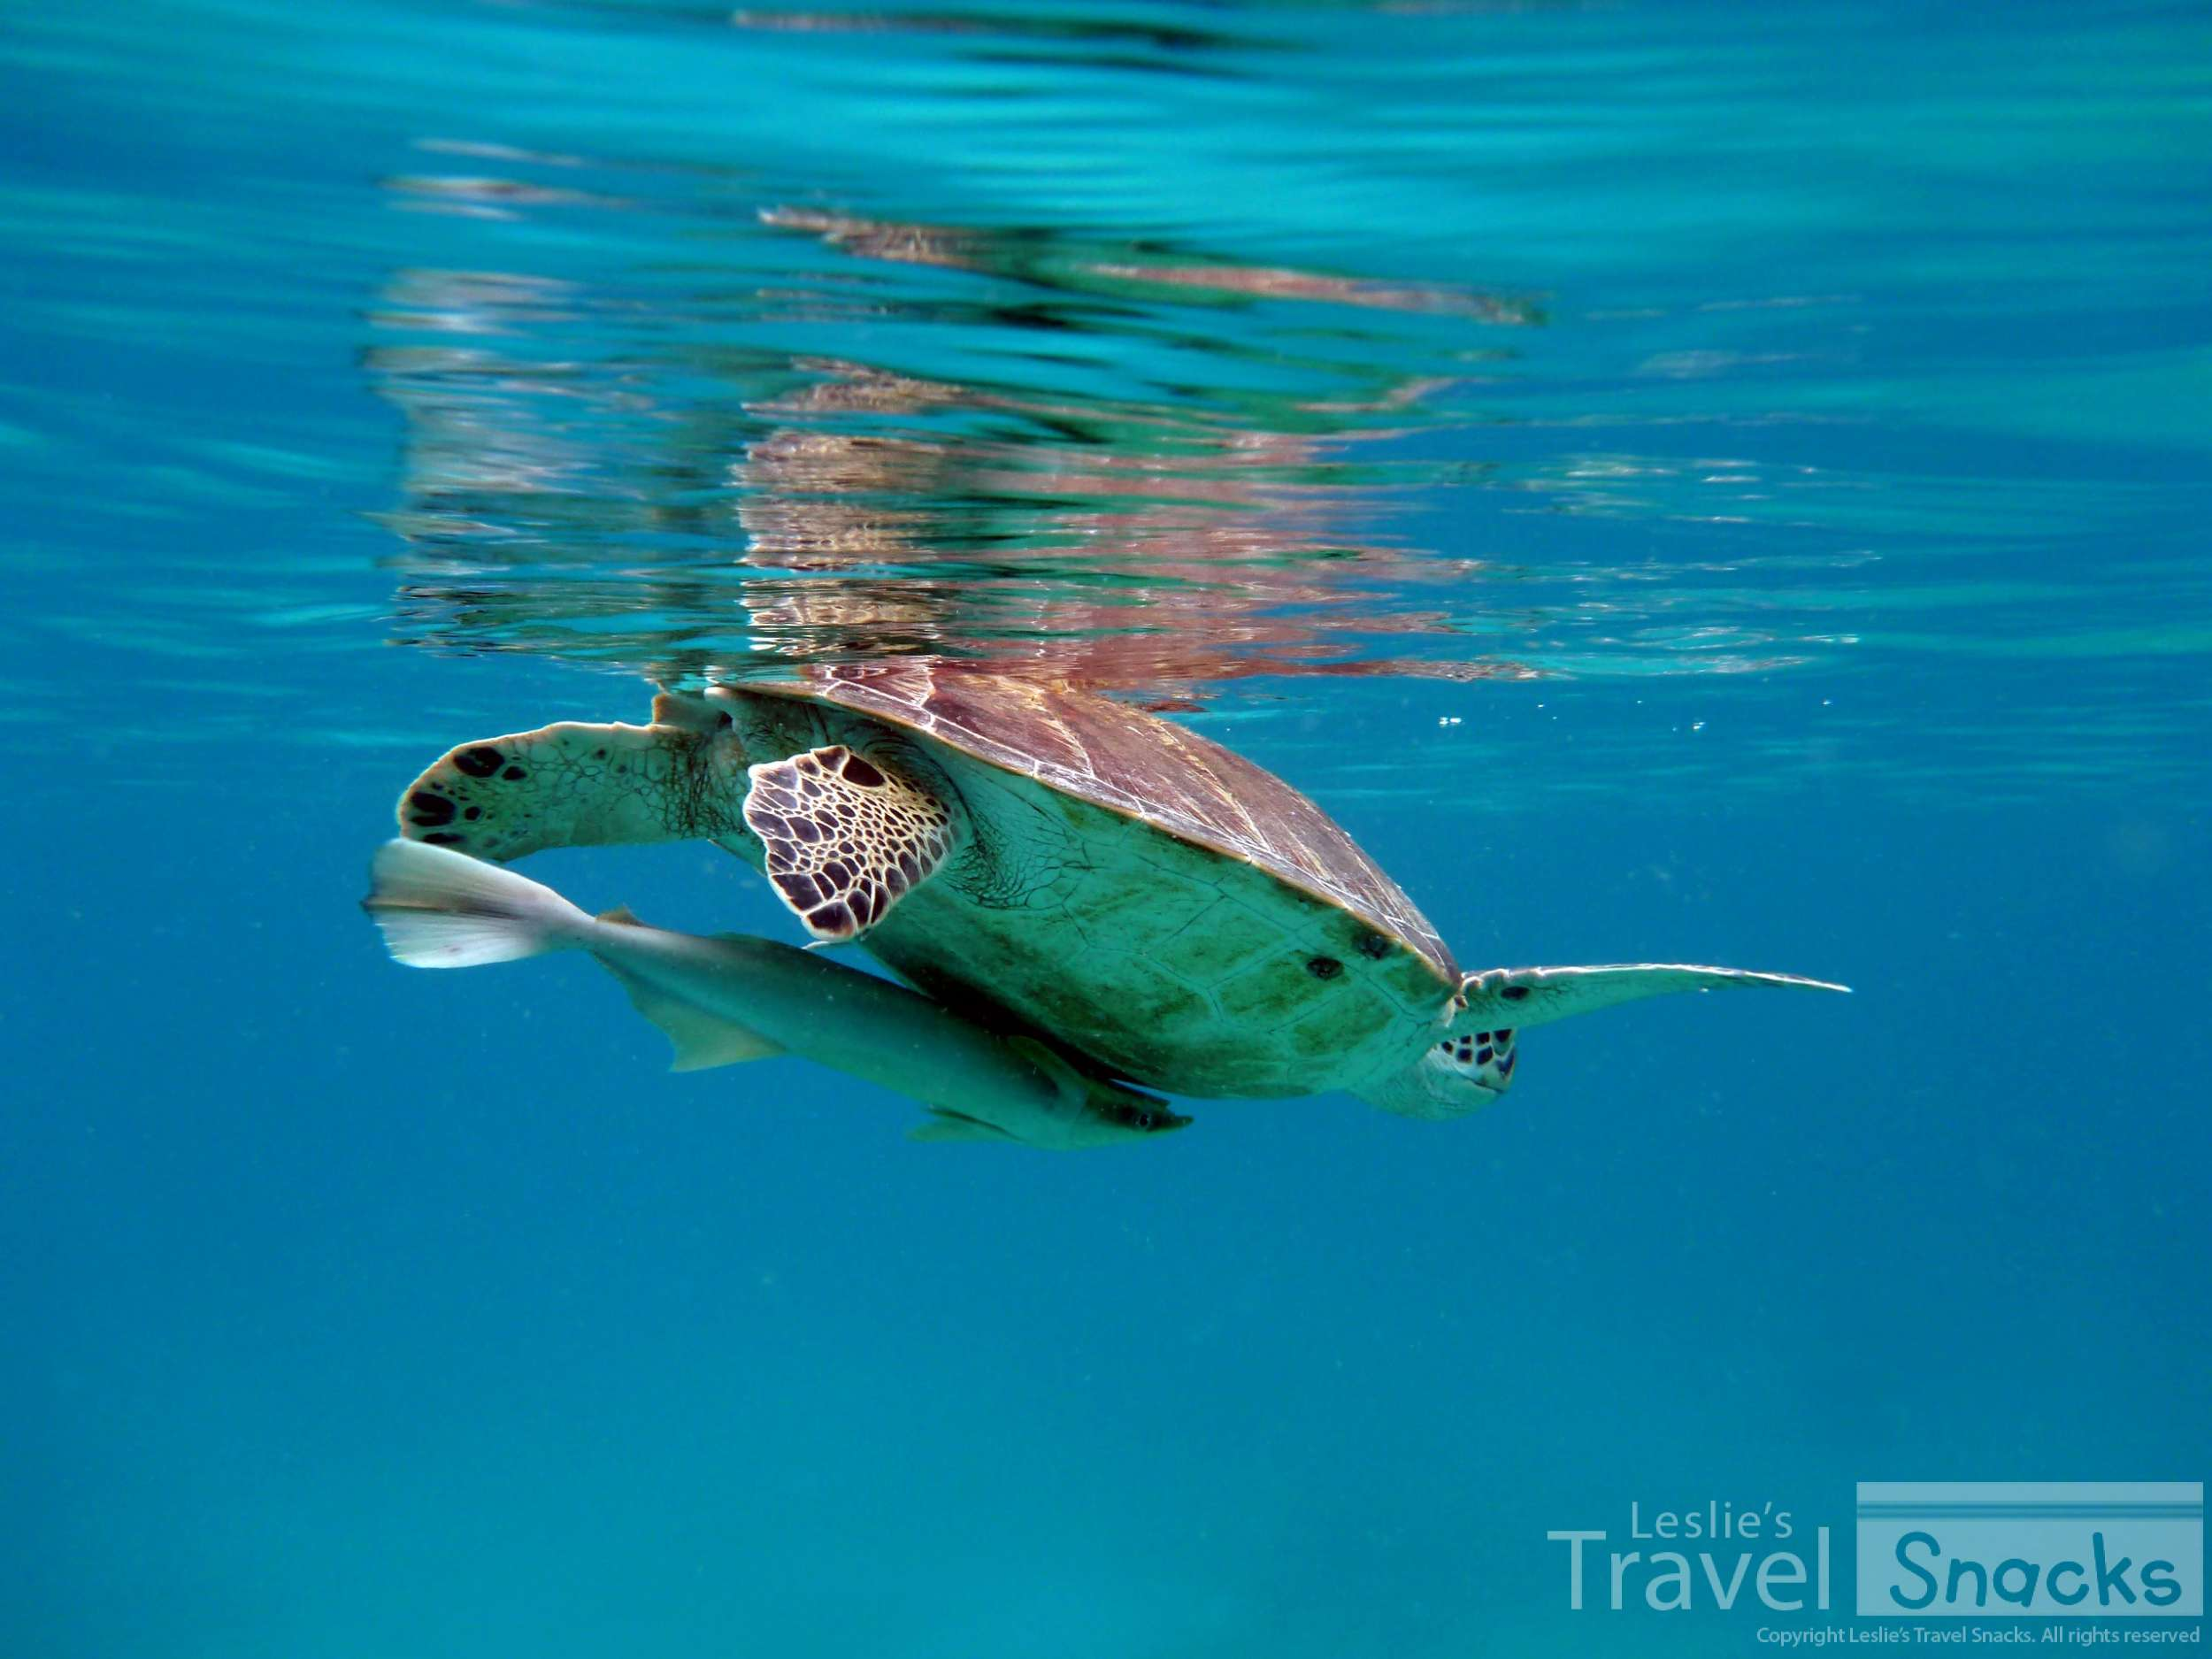 I took so many turtle photos because I got to swim with them every time I went out!